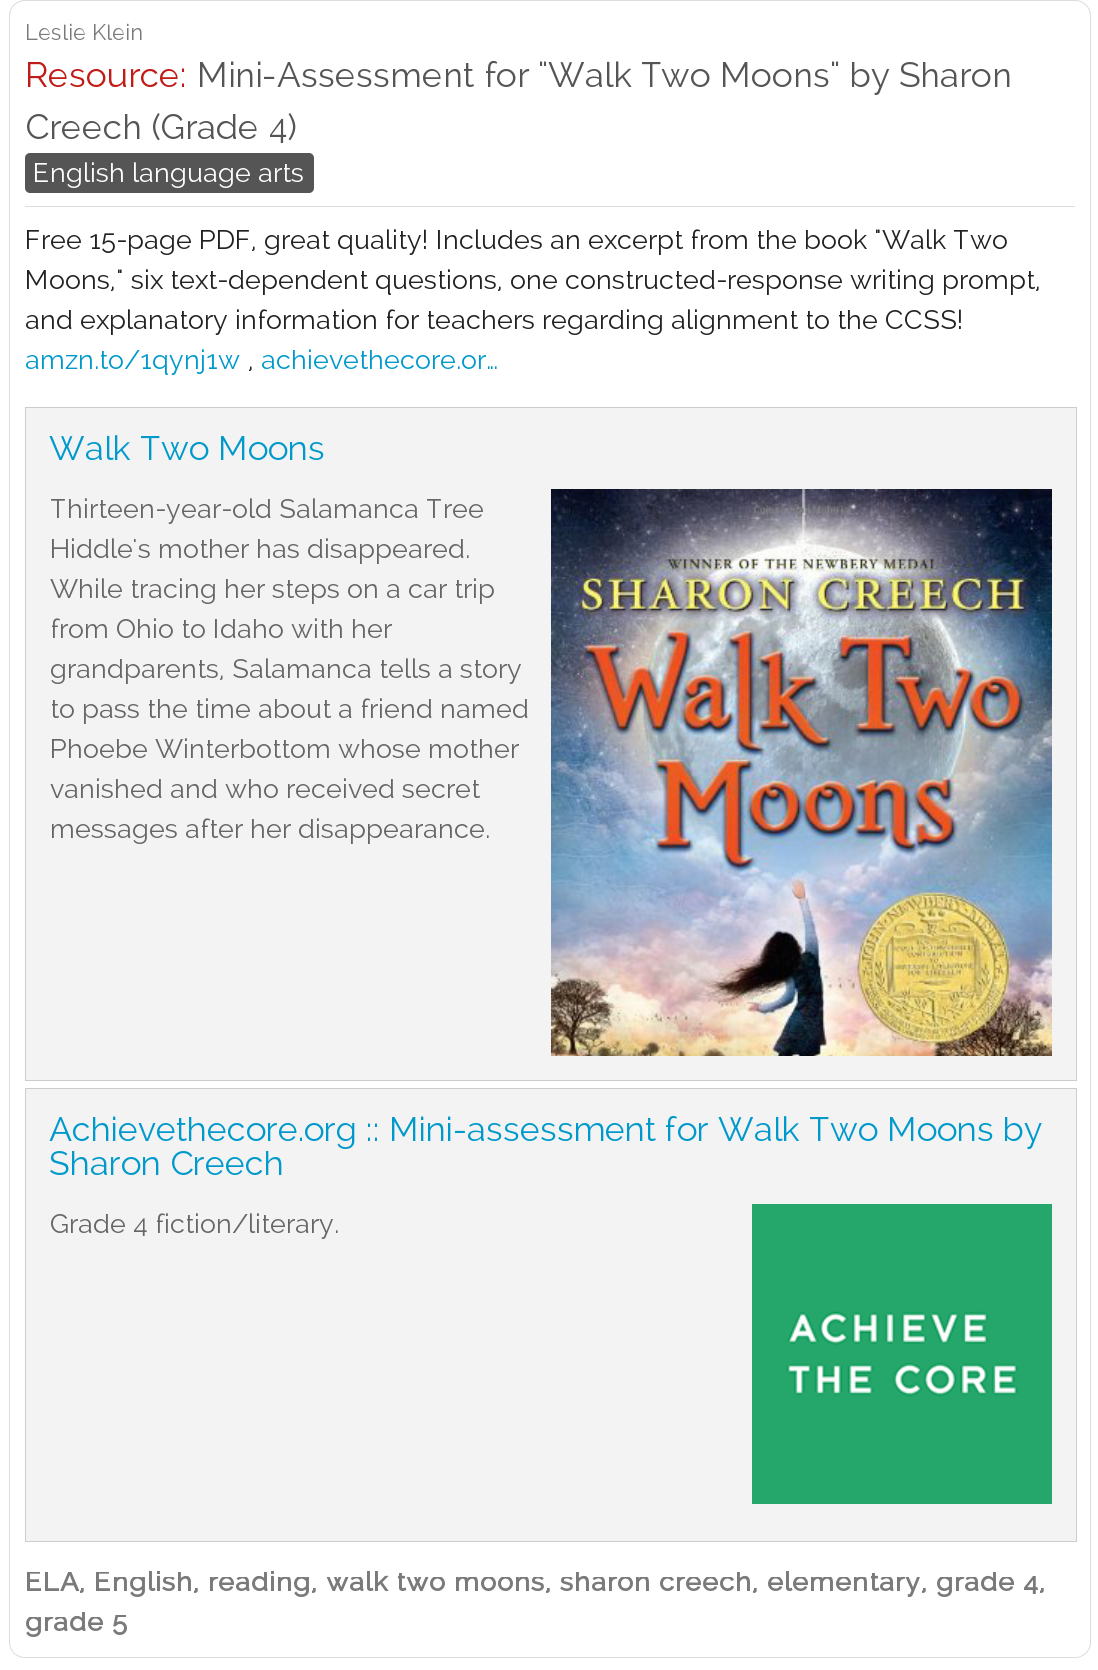 Worksheets Walk Two Moons Worksheets achieve the core mini assessment for walk two moons by sharon creech